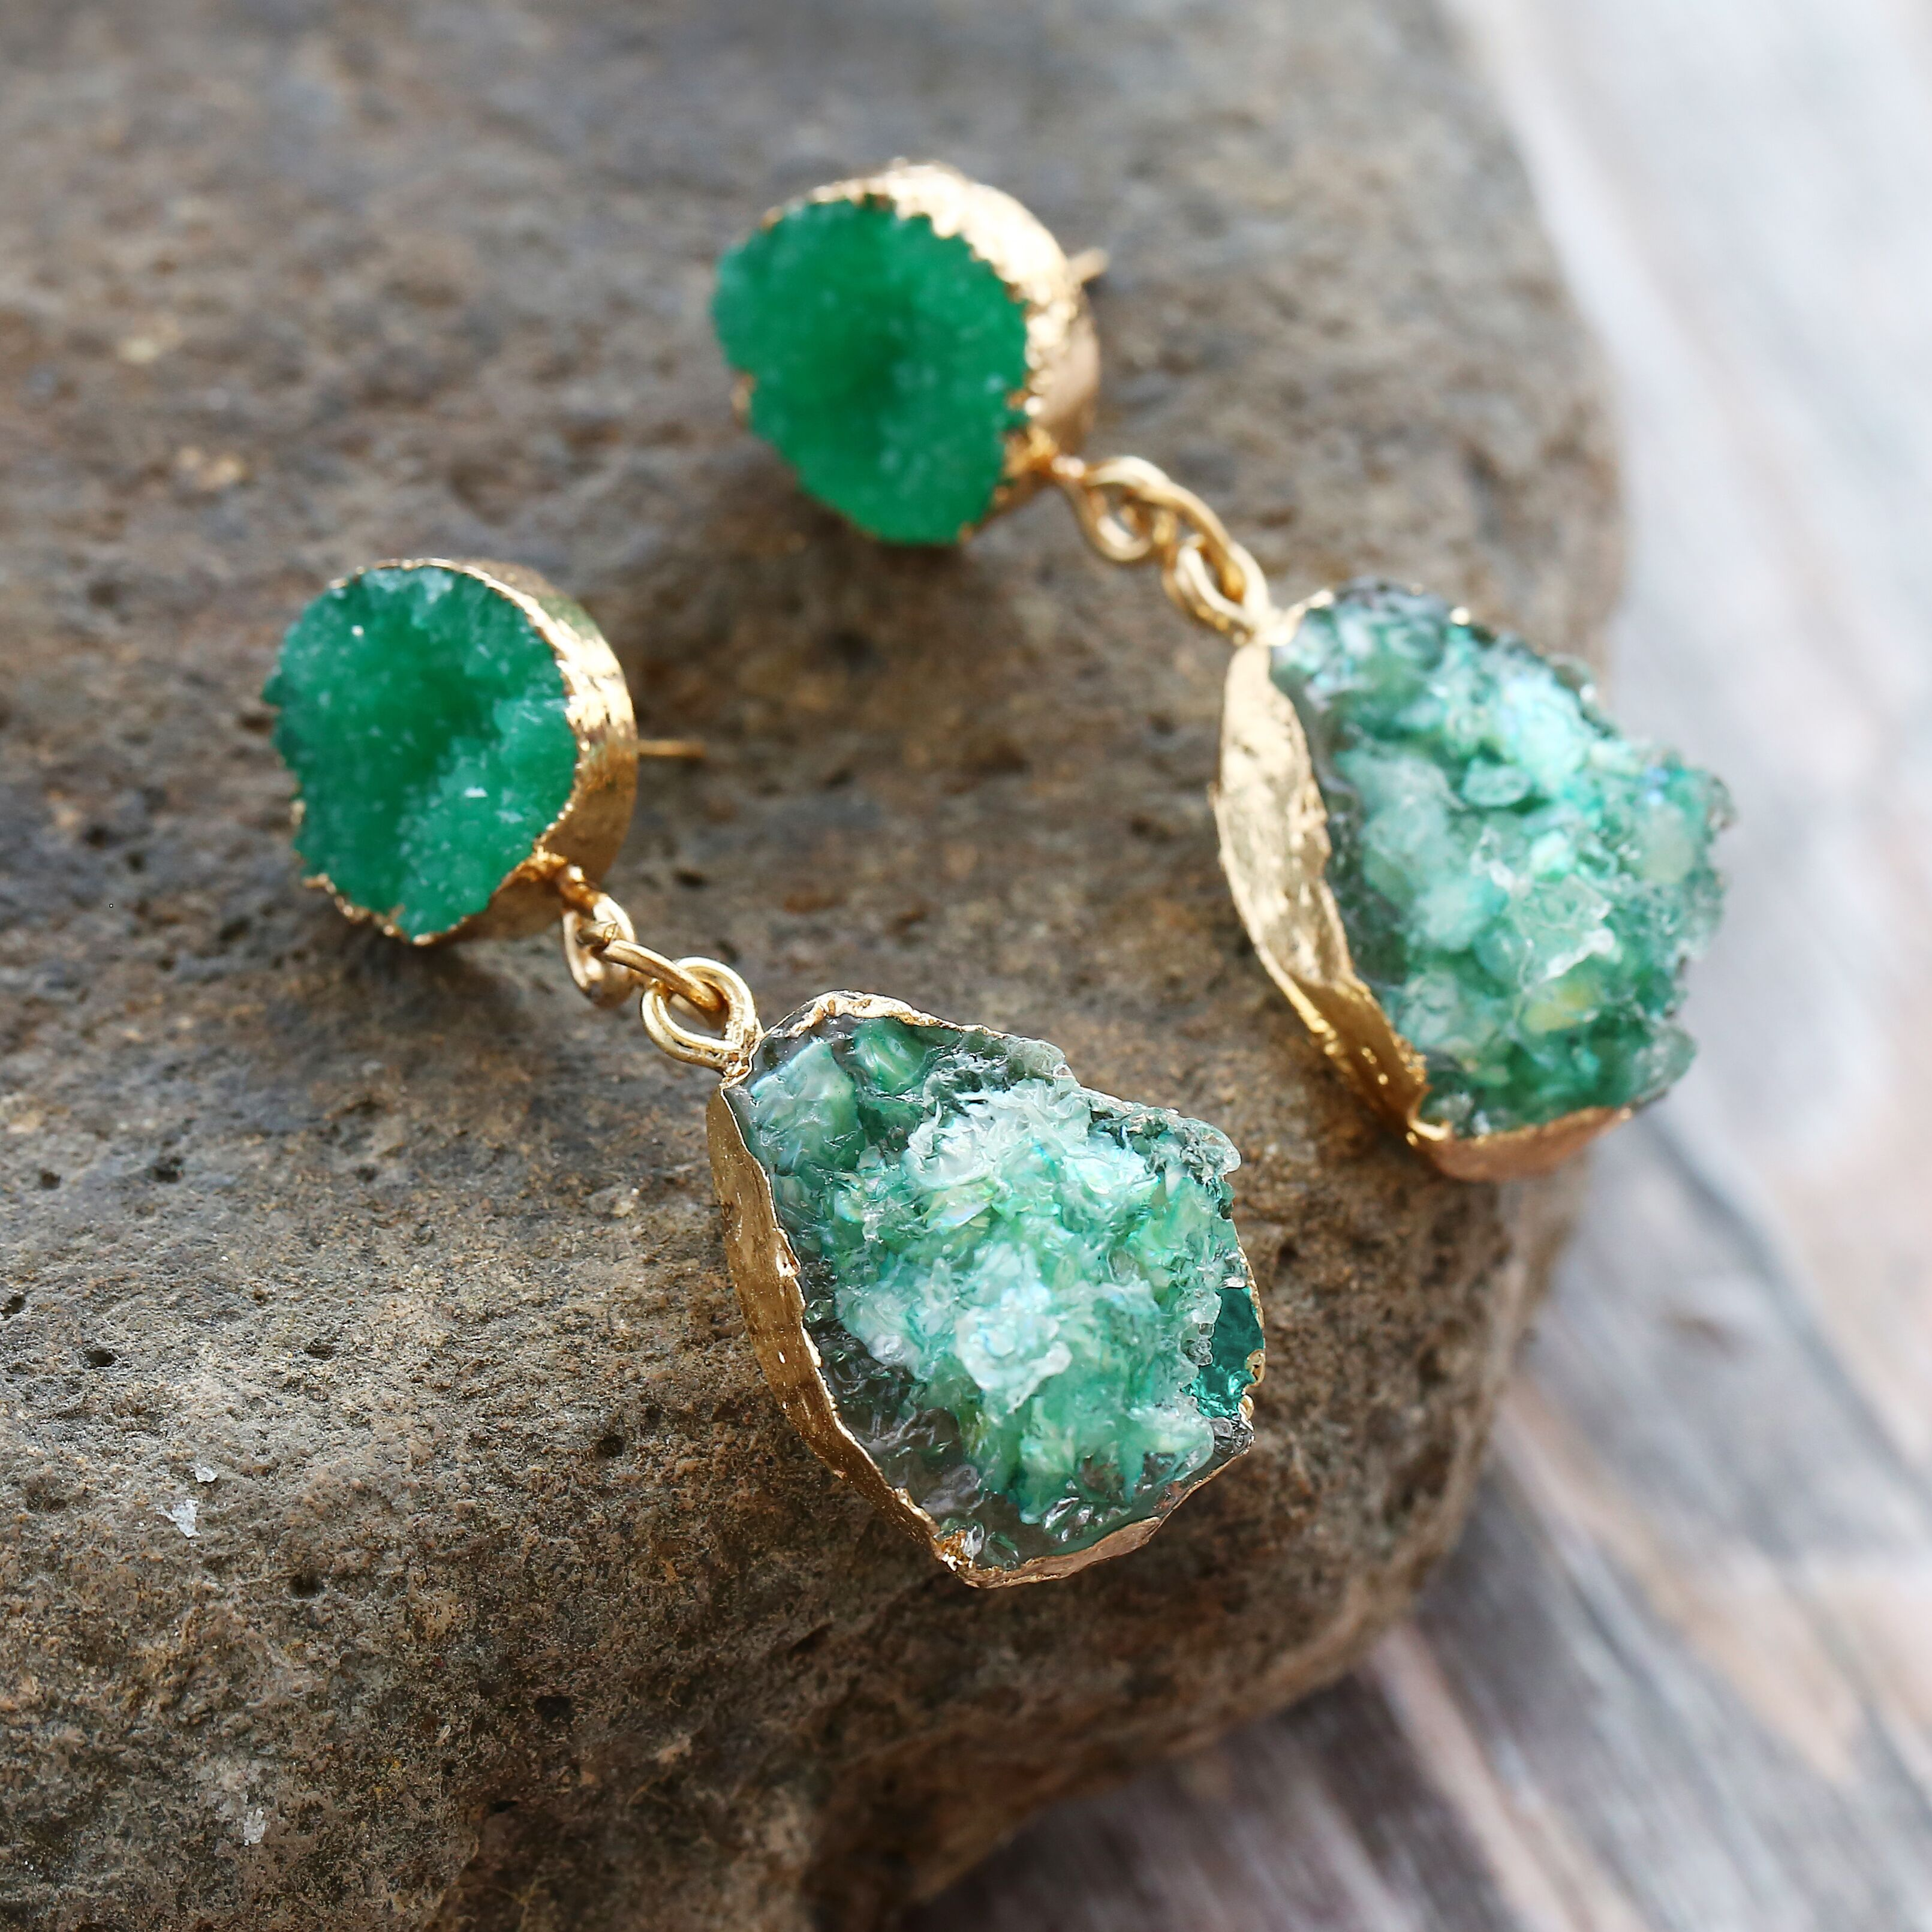 17KM Druzy Earings Chandelier Stone Vintage Jewelry Mix-Colors Resin Bohemian Green Women